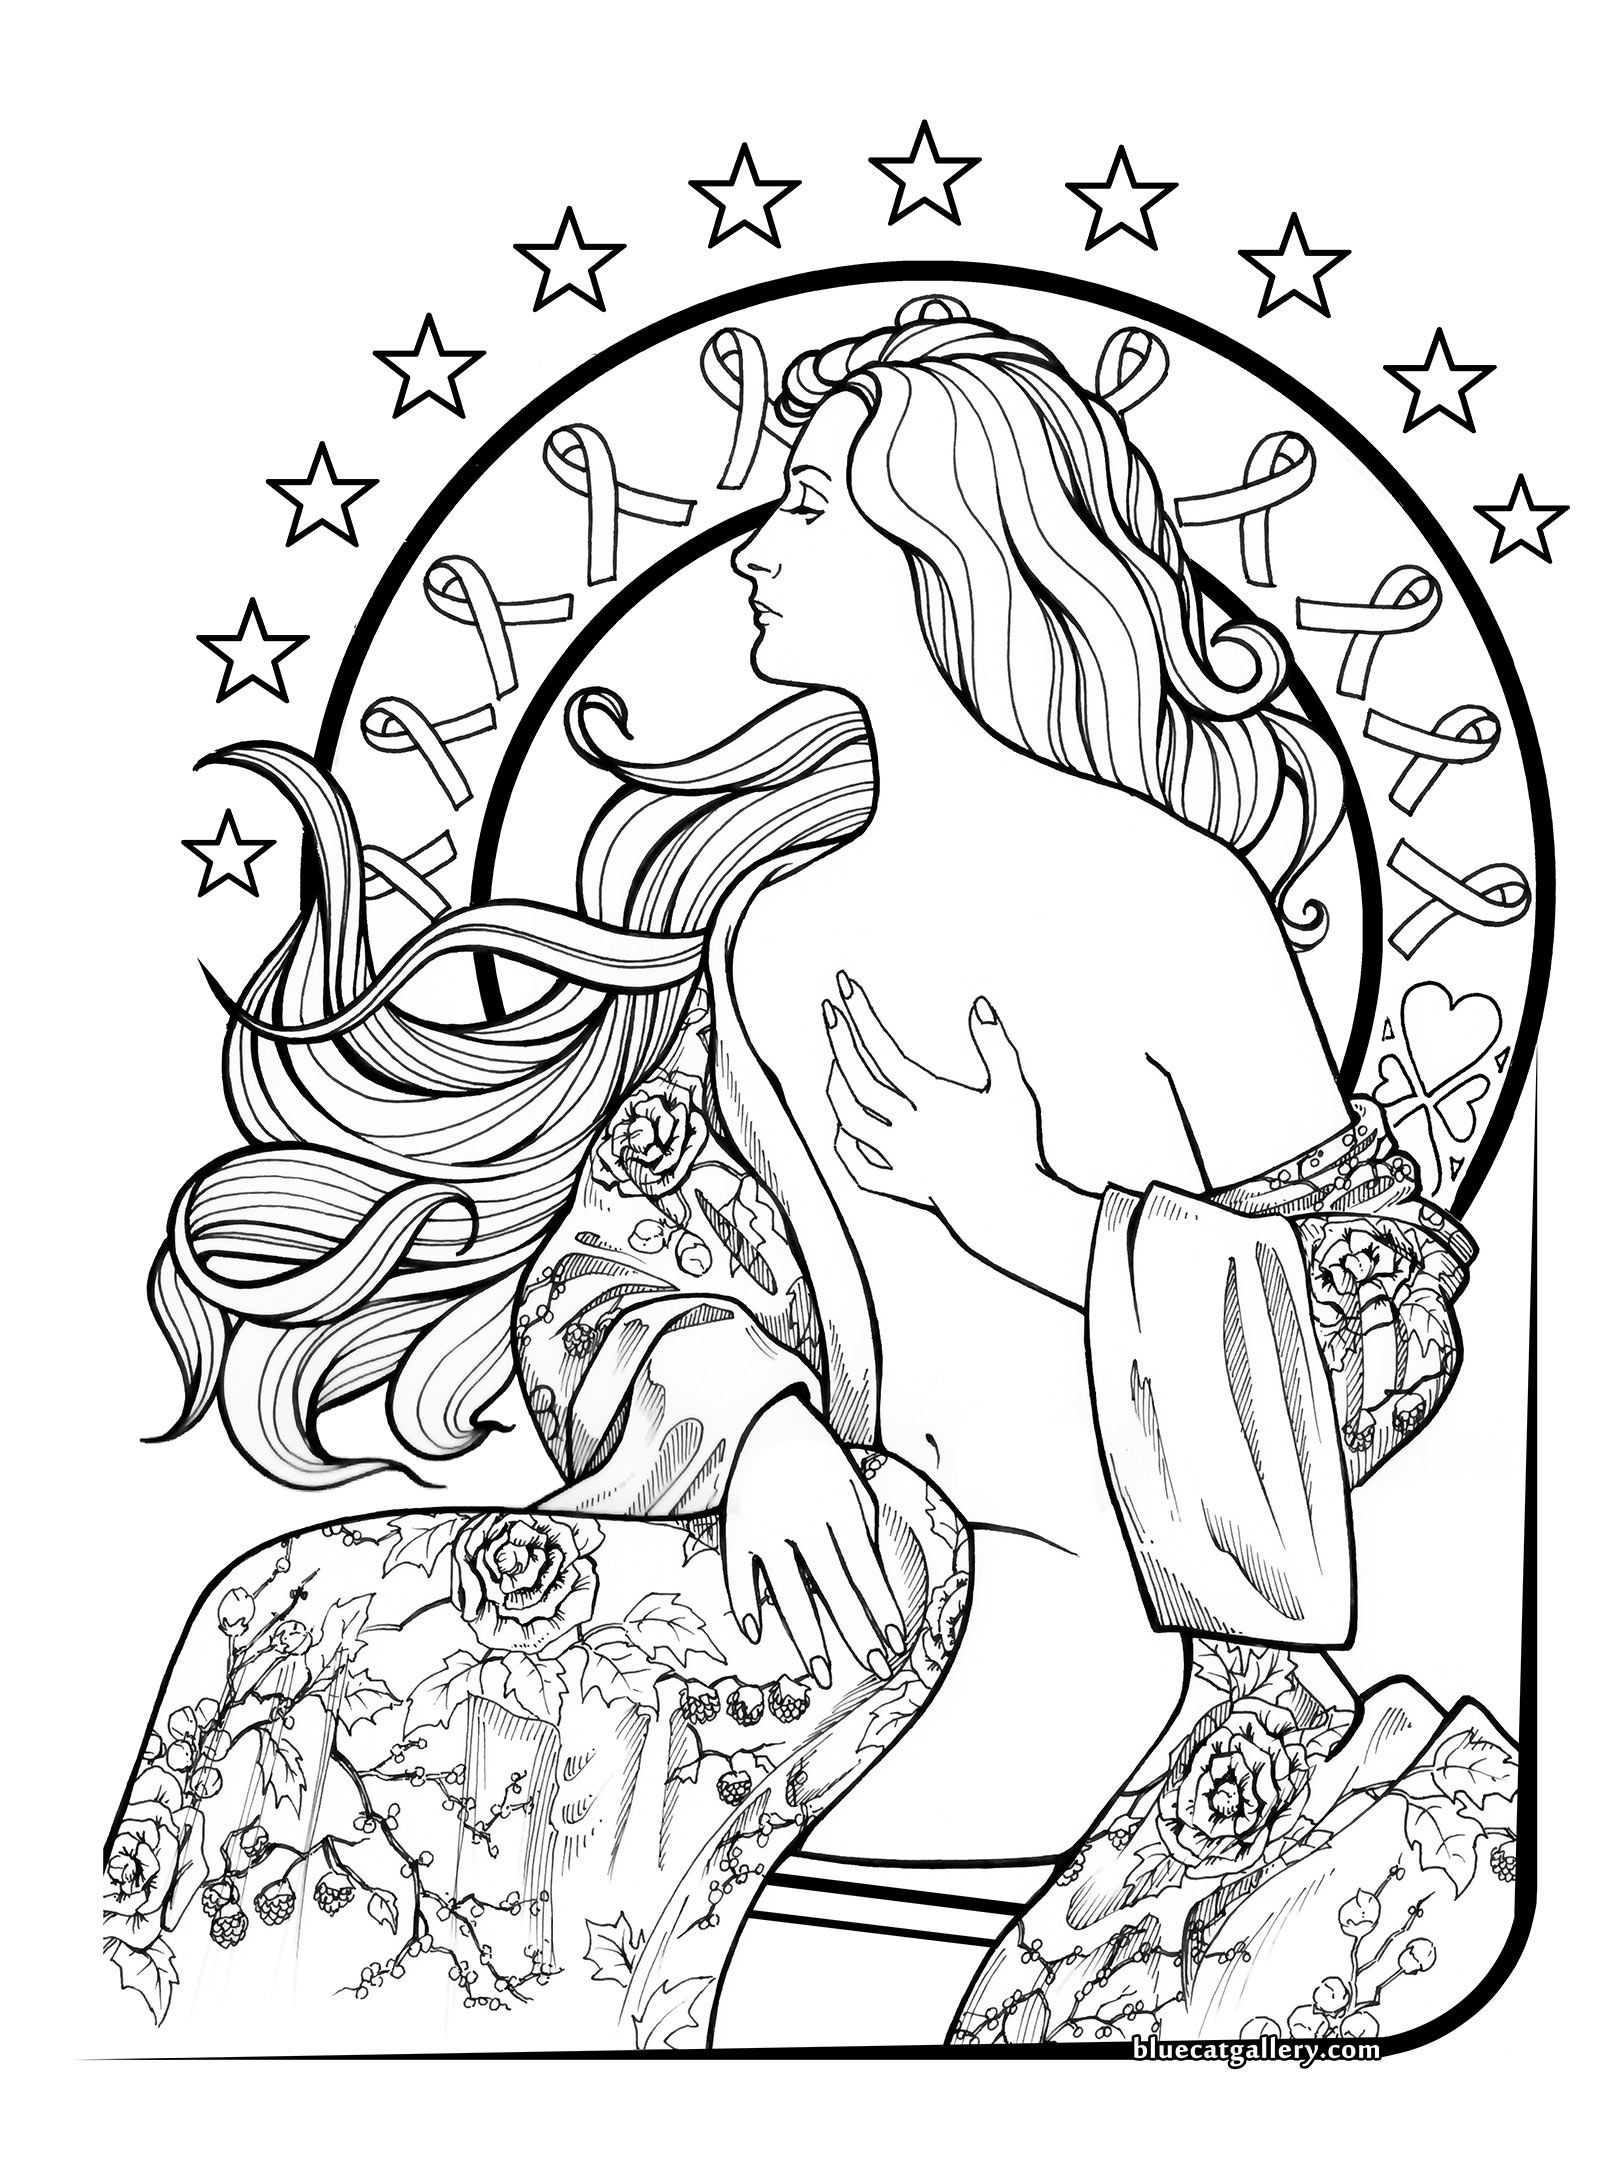 Breast cancer coloring page coloring pages pinterest coloring